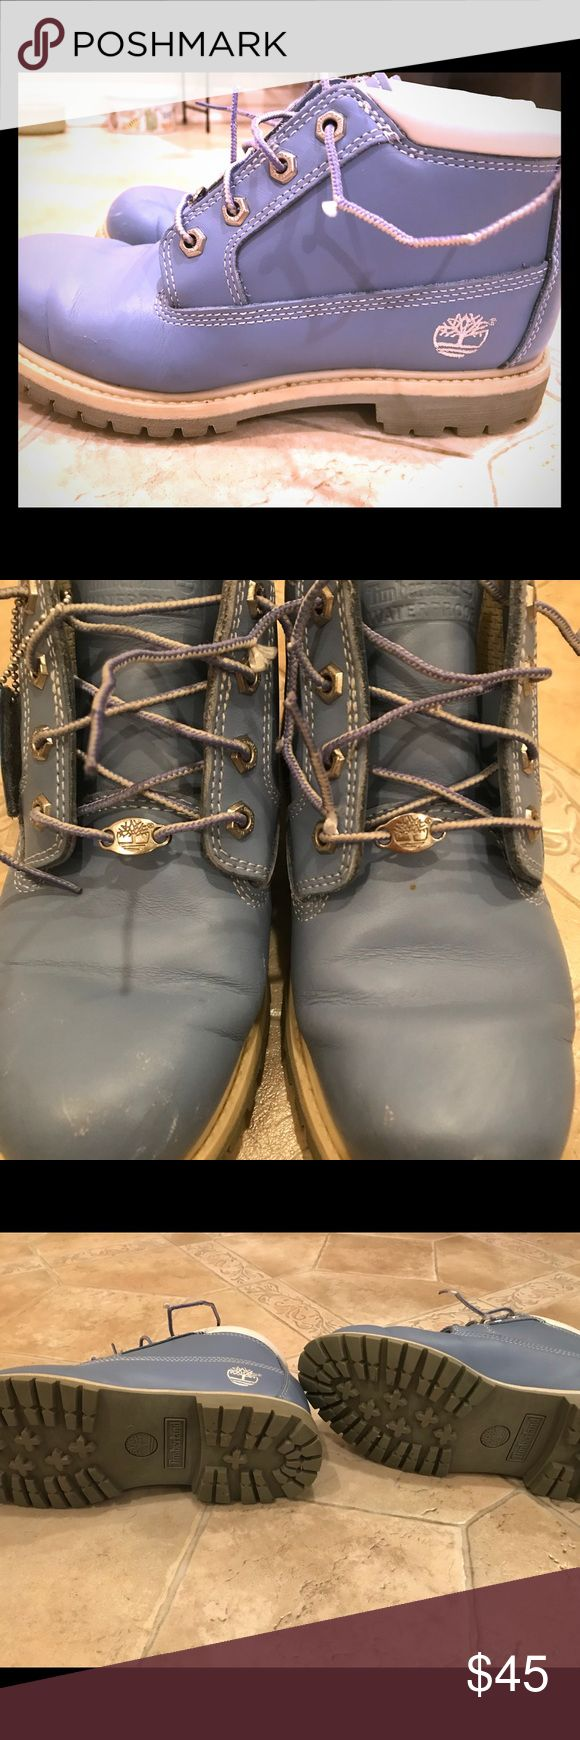 Woman's timberland waterproof boots size 8 1/2 Woman's blue waterproof ankle timberland boots size 8 1/2. I only wore about a dozen times. *Please look through pics. Front of shoes have some white scrapes on them* otherwise excellent condition. Timberland Shoes Ankle Boots & Booties